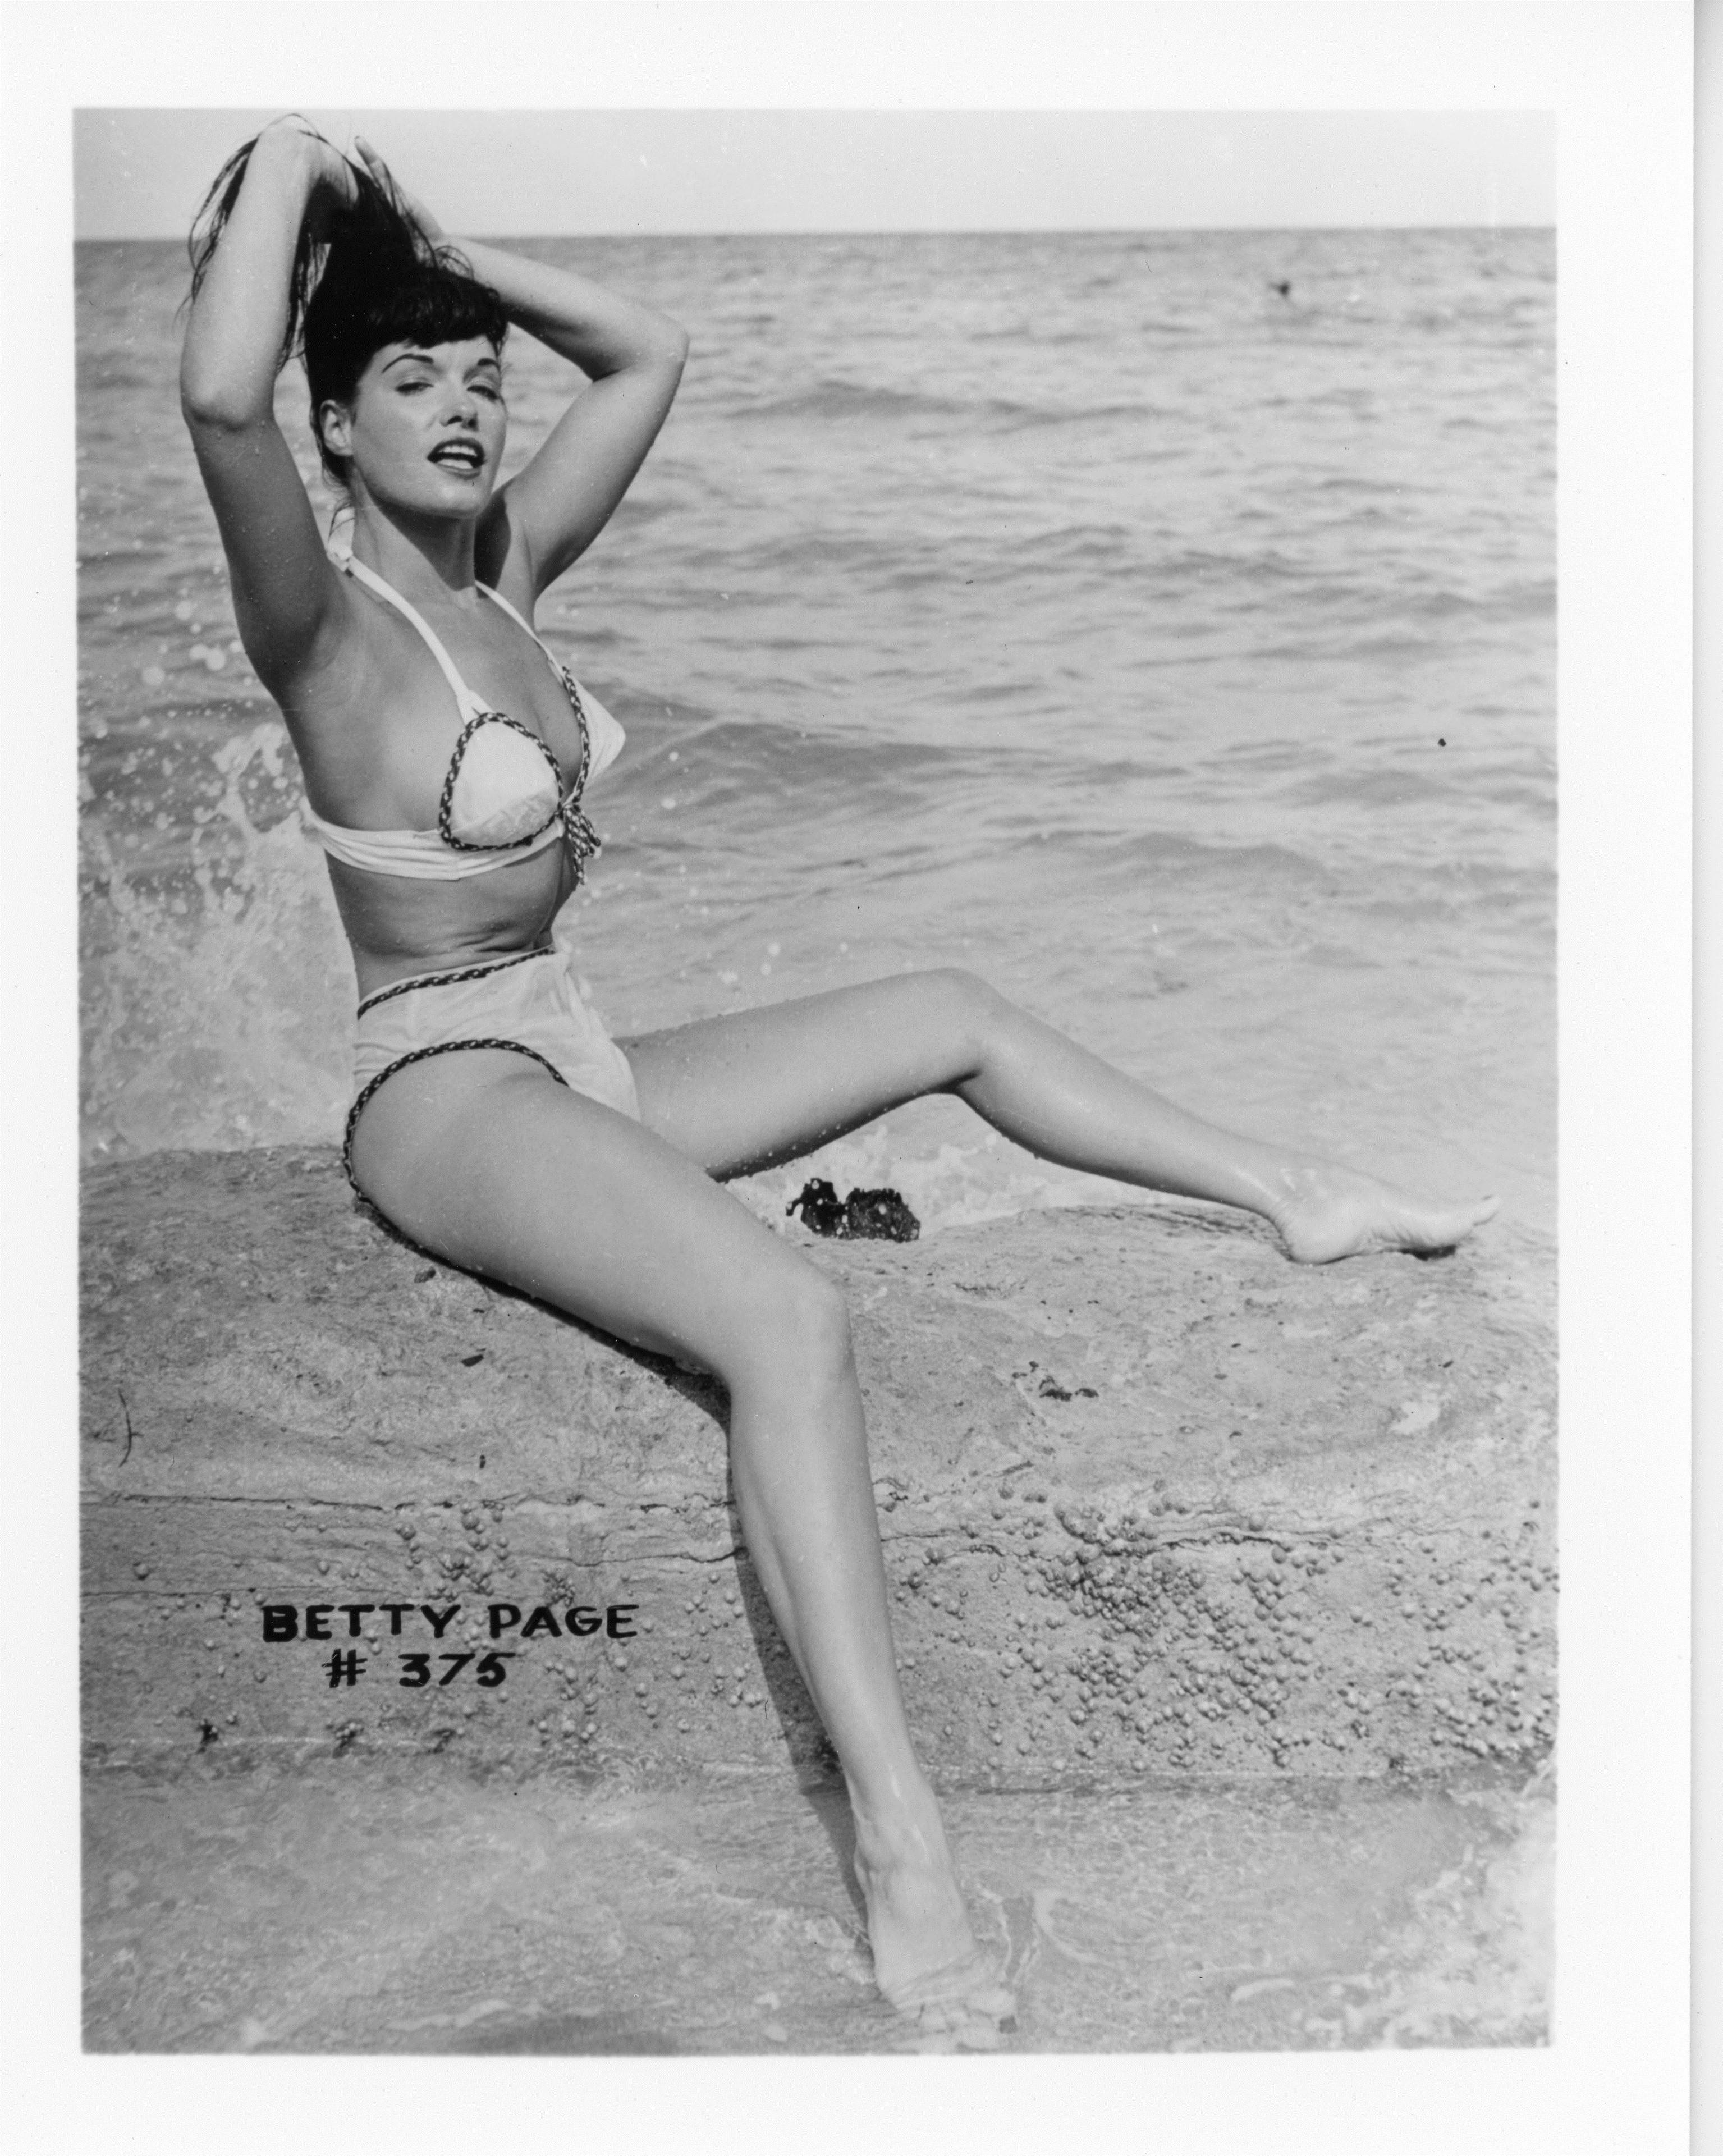 Bunny Yeager's photos of Bettie Page in a leopard-print bathing suit standing next to a real cheetah helped launch a pin-up career for Yeager as a photographer and Page as a beauty.